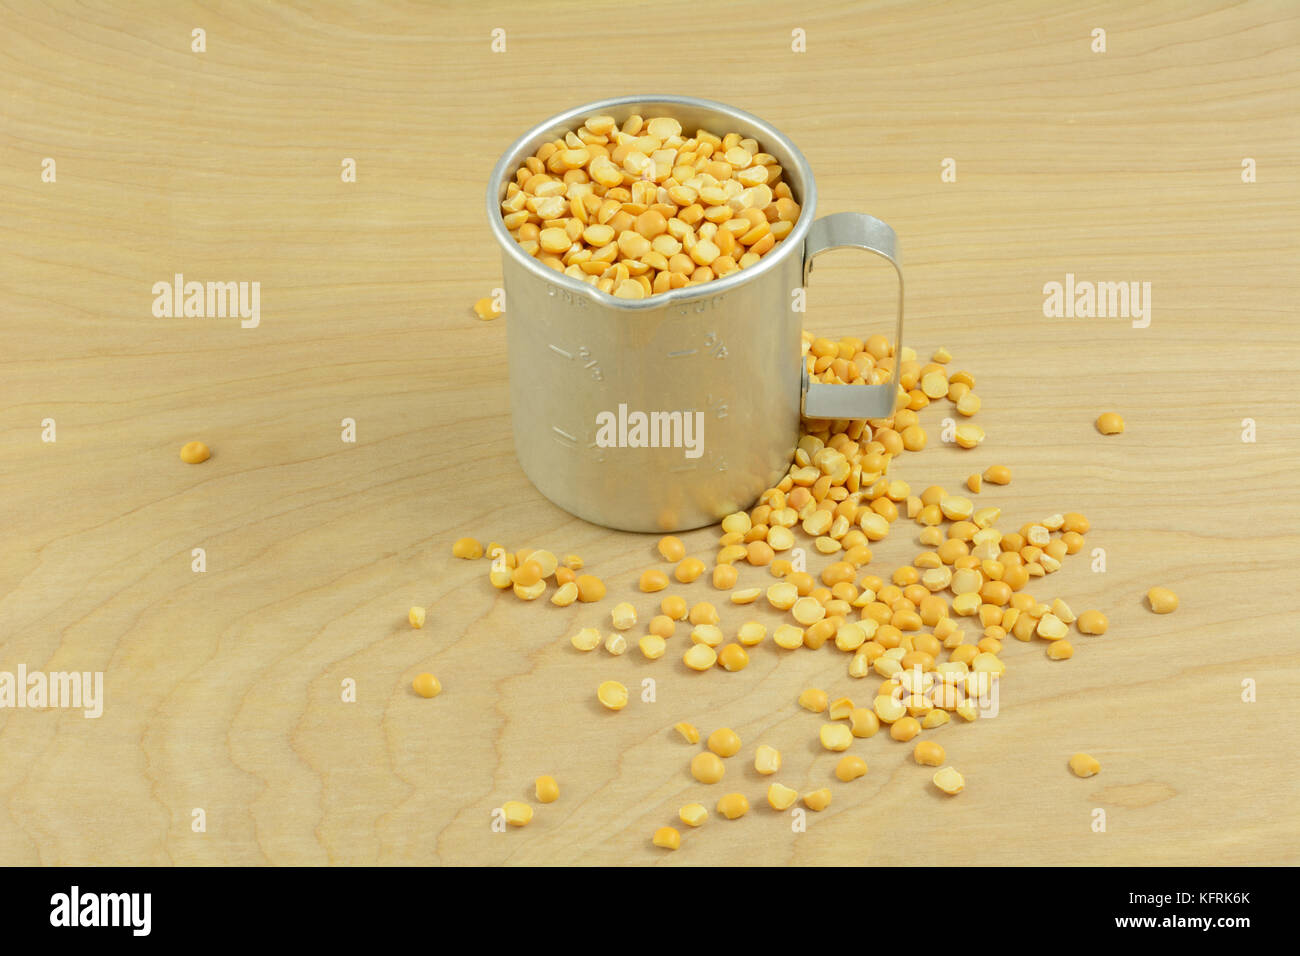 Antique retro measuring cup full of dry raw yellow spit peas - Stock Image